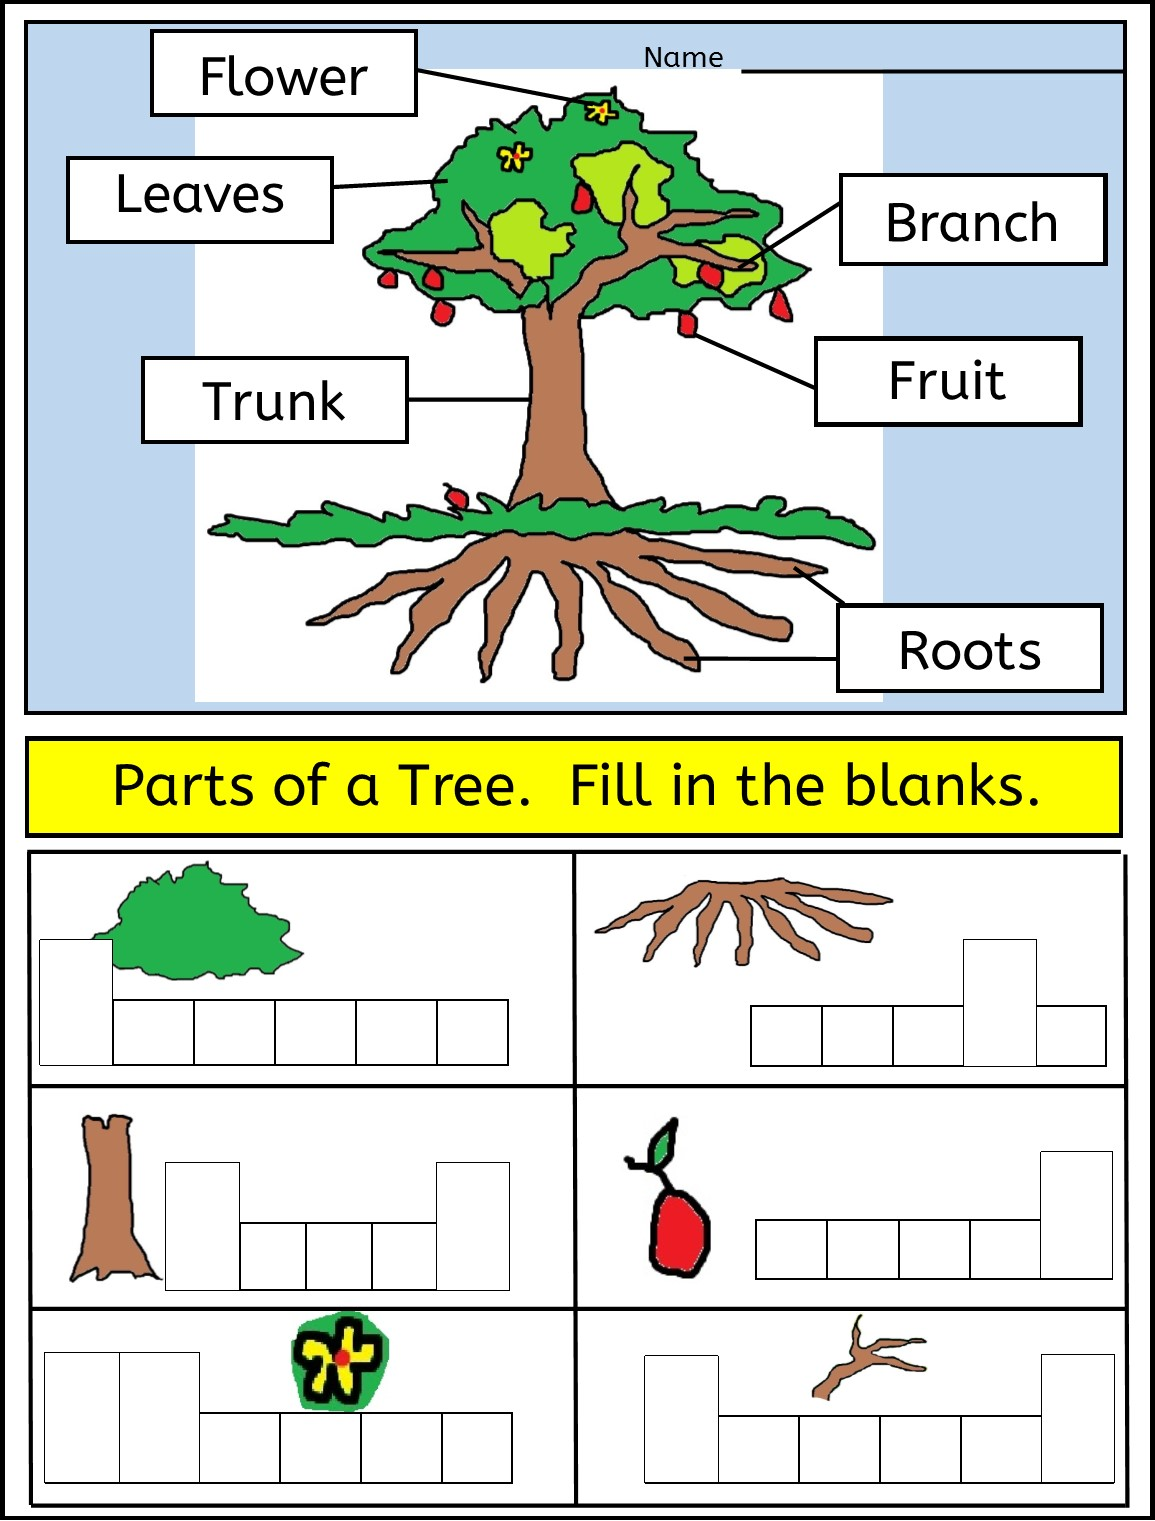 Parts Of A Plant Diagram Worksheet astonishing Parts Of A Plant and moreover parts of a tree worksheet for kindergarten – theroughriders club moreover Parts of a Tree Worksheet   Little Learning Lane TPT Store as well K Earth Science Printable Worksheets What Is Soil Worksheet 2 Grade as well Trees besides Parts Of A Tree Worksheet For Kindergarten Tree Diagram Tree Parts additionally  likewise PLANTs and VEGETATION besides Parts Of A Tree For Preers The Parts Of A Tree Worksheet additionally Parts of a Tree Poster Worksheet  SB10351    SparkleBox as well trees worksheets kindergarten parts of a tree for kids science furthermore  together with Label Tree Anatomy Printout   EnchantedLearning in addition Parts of a Tree and Psalm 1  Advanced Worksheet   Bible and also Leaning Parts of tree for kids Worksheet Vector Image moreover Parts Of A Tree Worksheet. on parts of a tree worksheet